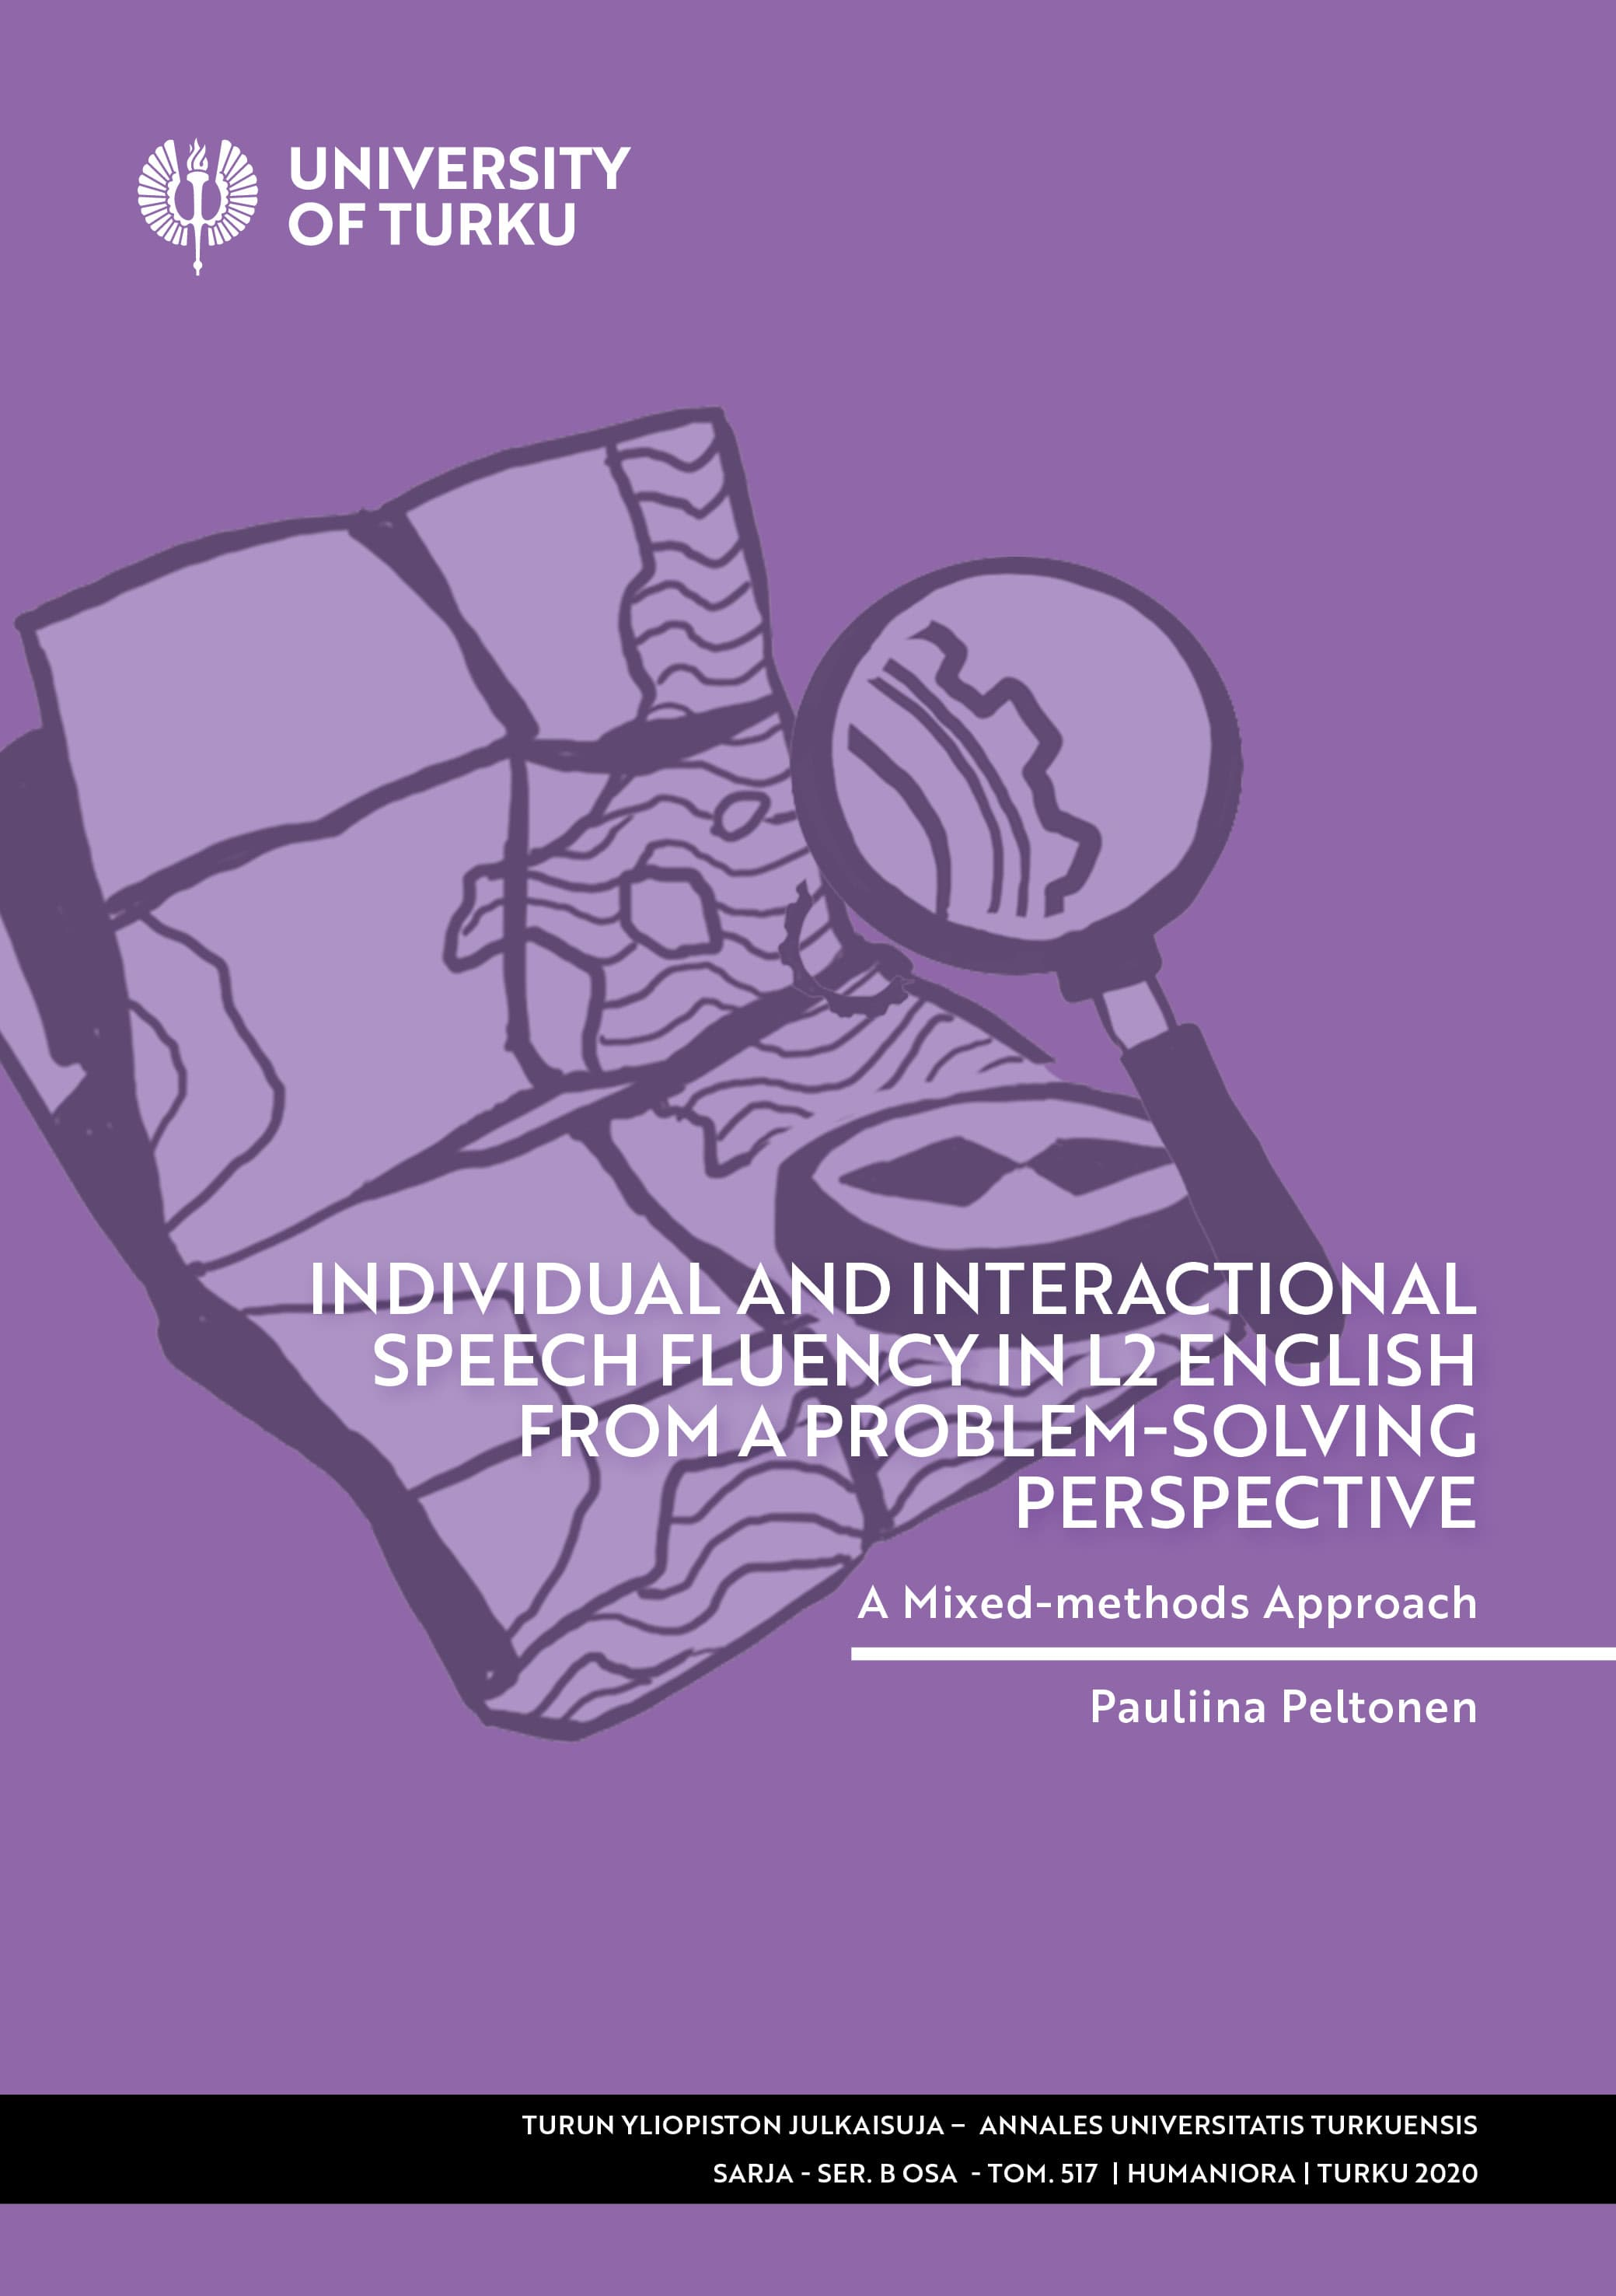 Individual and Interactional Speech Fluency in L2 English from a Problem-solving Perspective: A Mixed-methods Approach